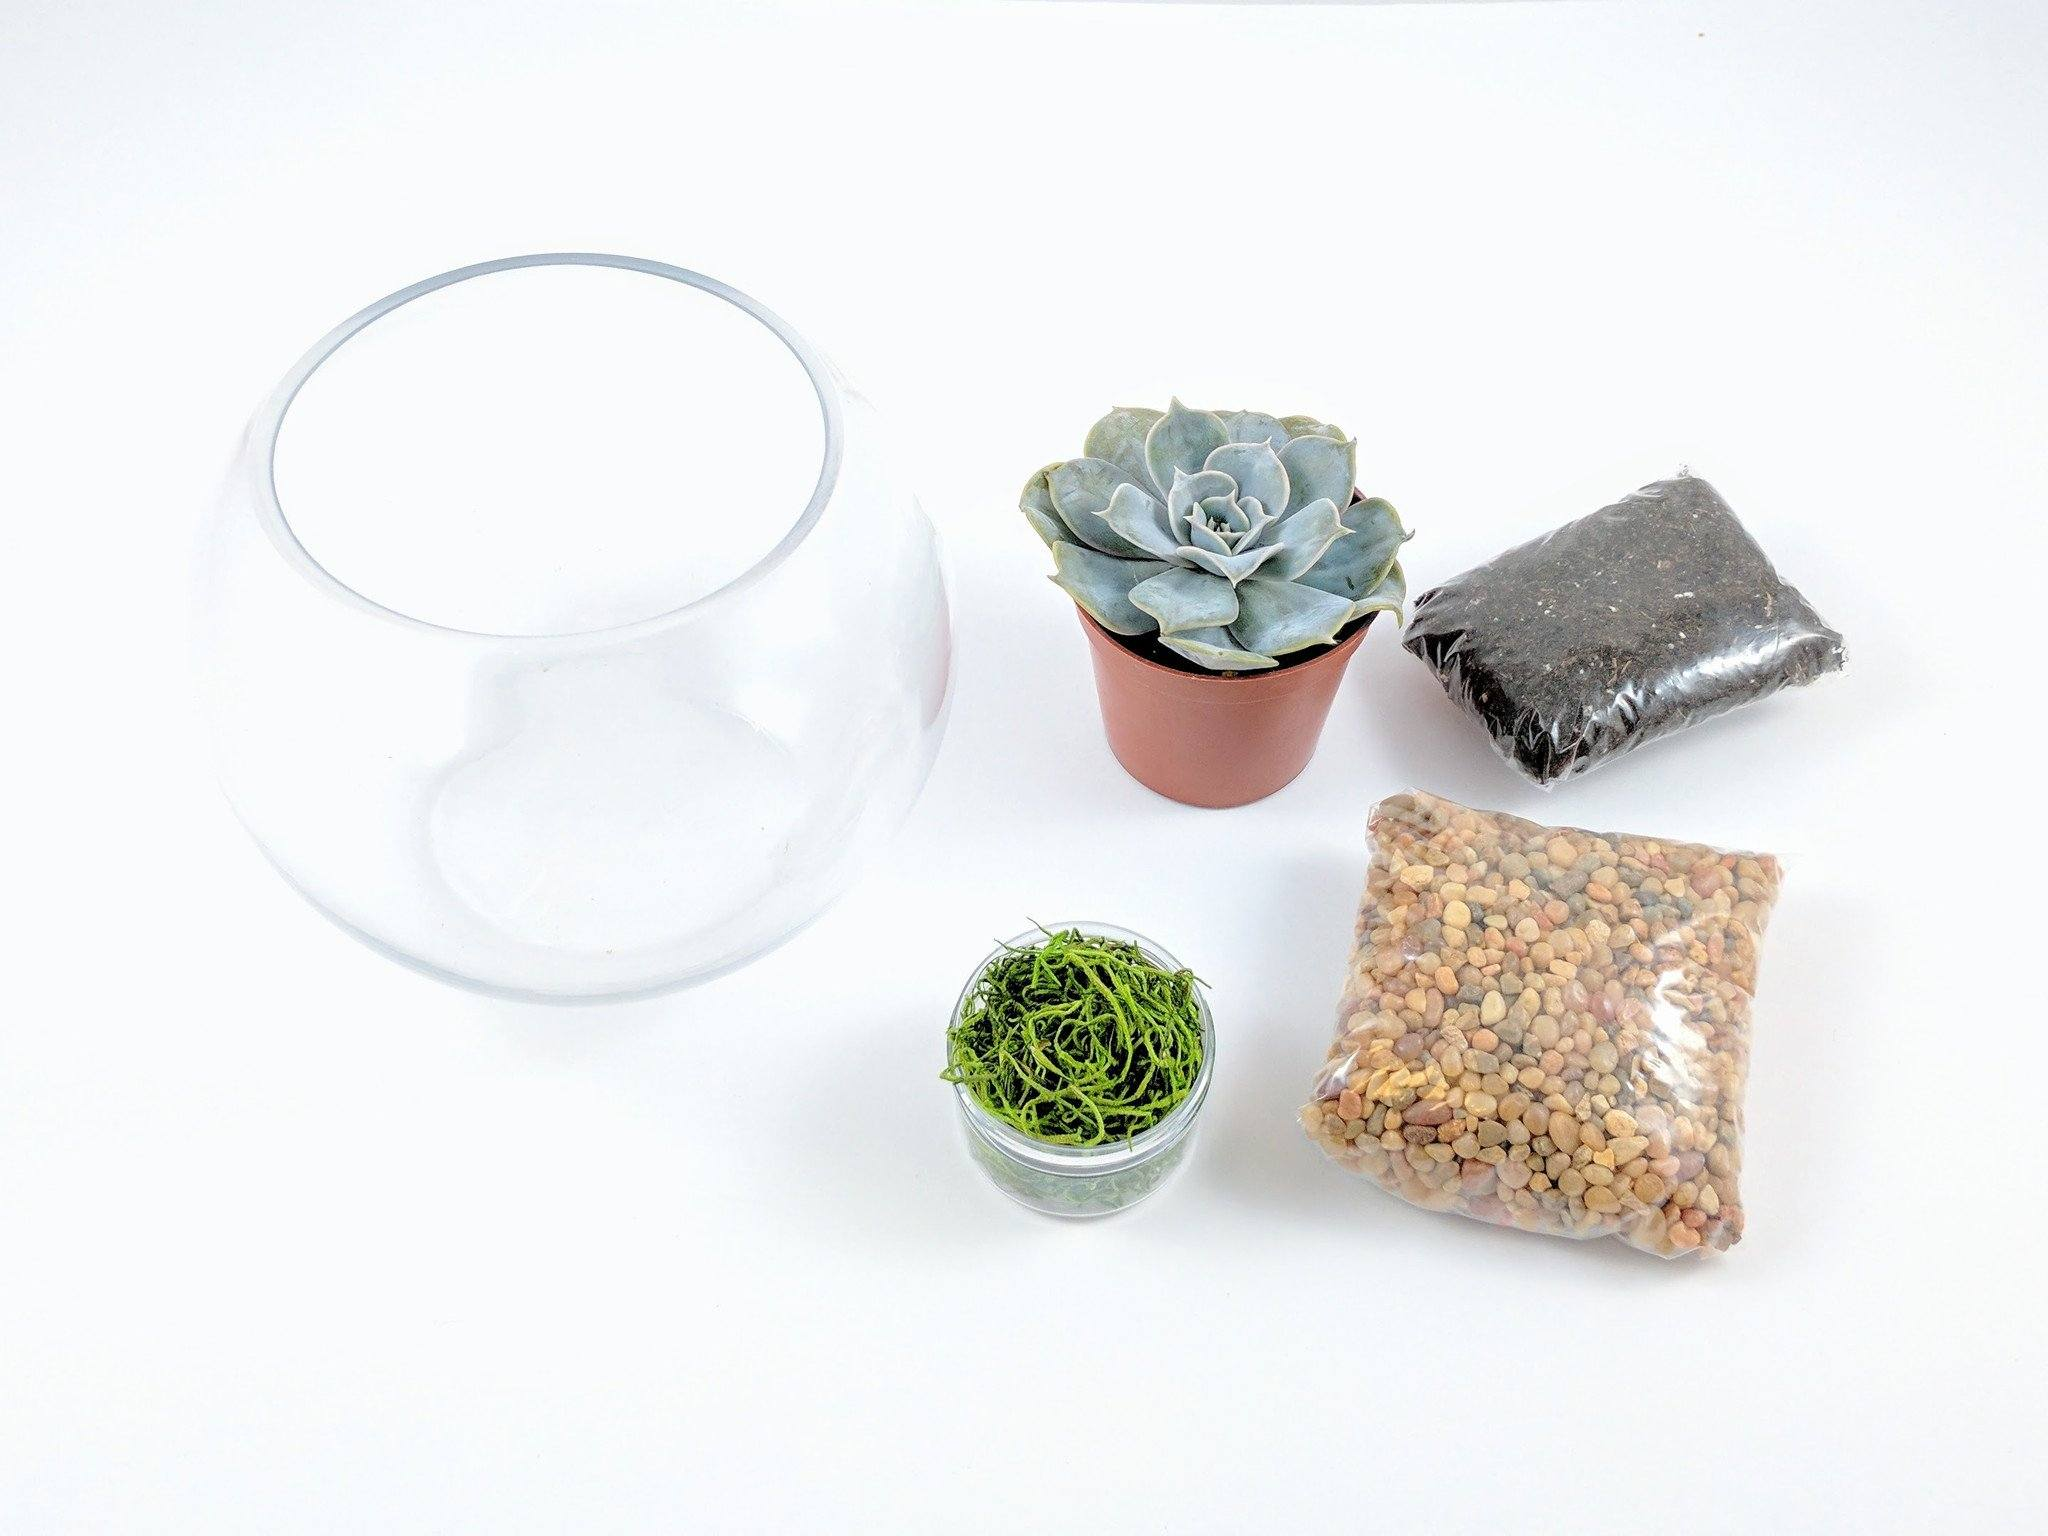 DIY Terrarium Kits - DIY Succulent Terrarium Kit - Fishbowl